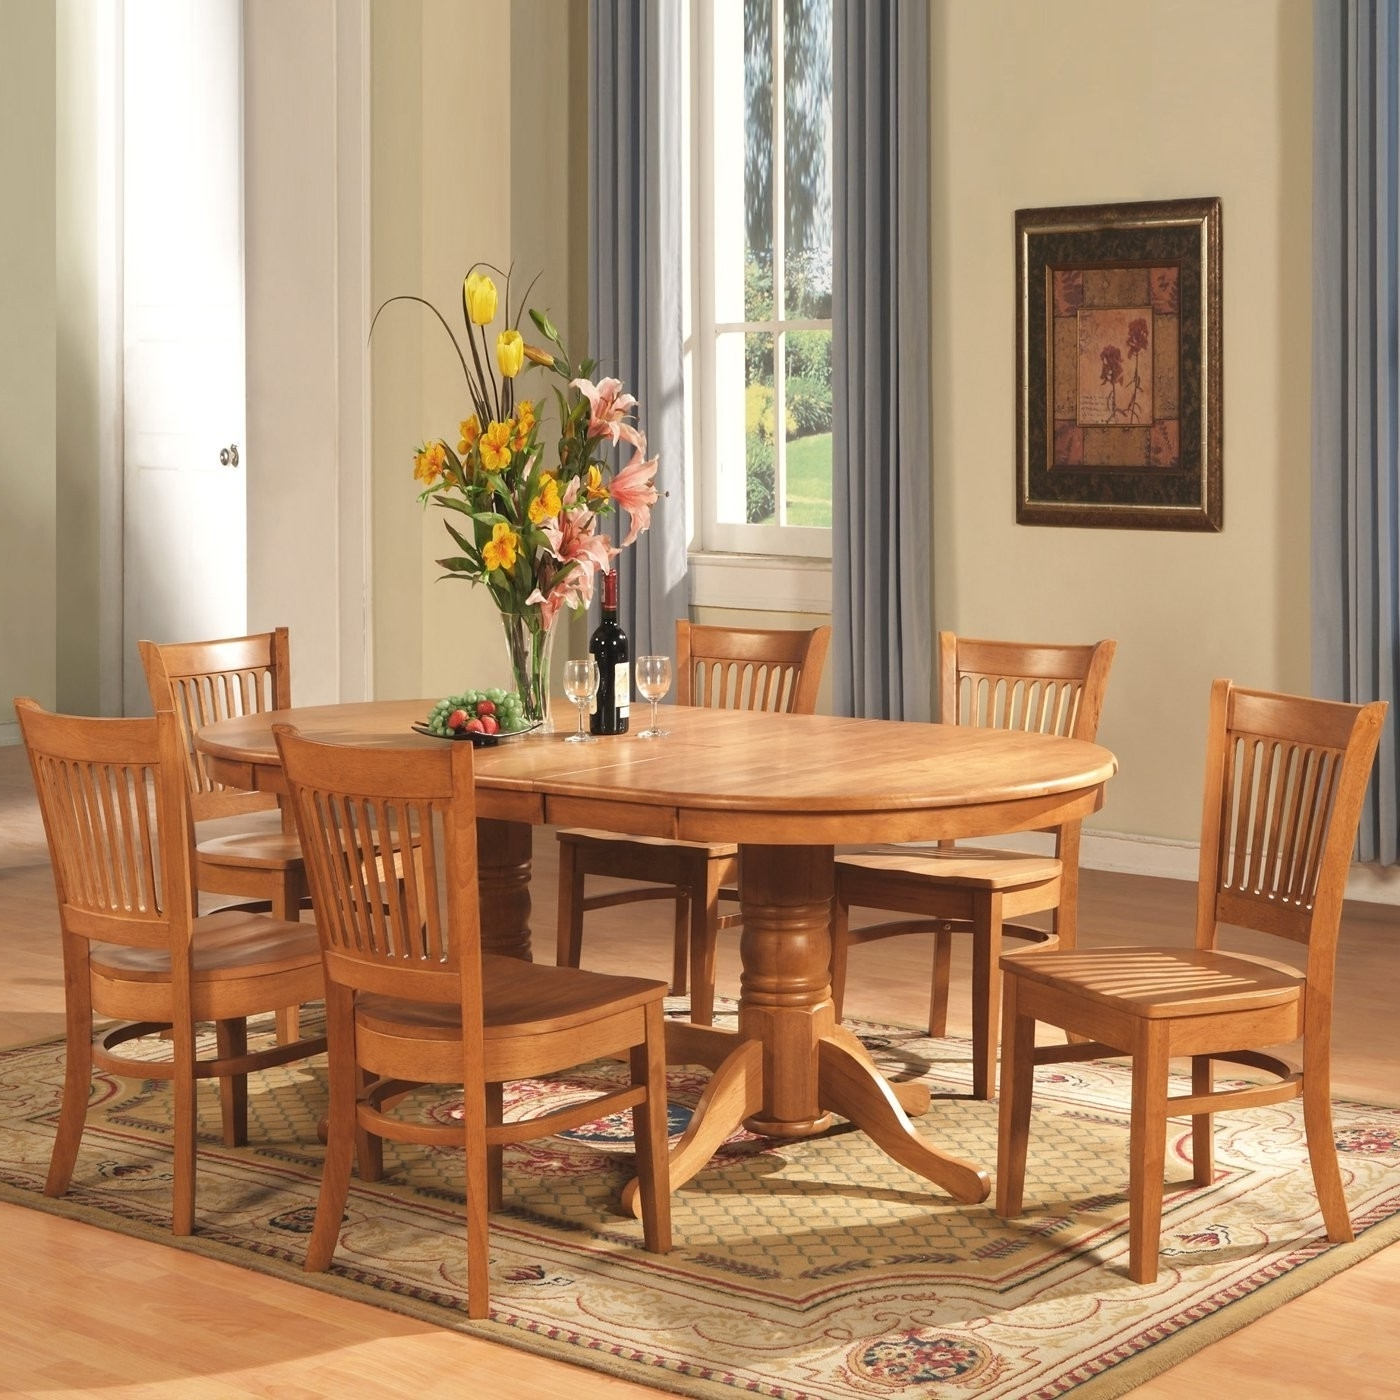 Solid Oak Dining Room Table And 8 Chairs Best Of Inspirational Oak With Current Solid Oak Dining Tables And 6 Chairs (View 18 of 25)